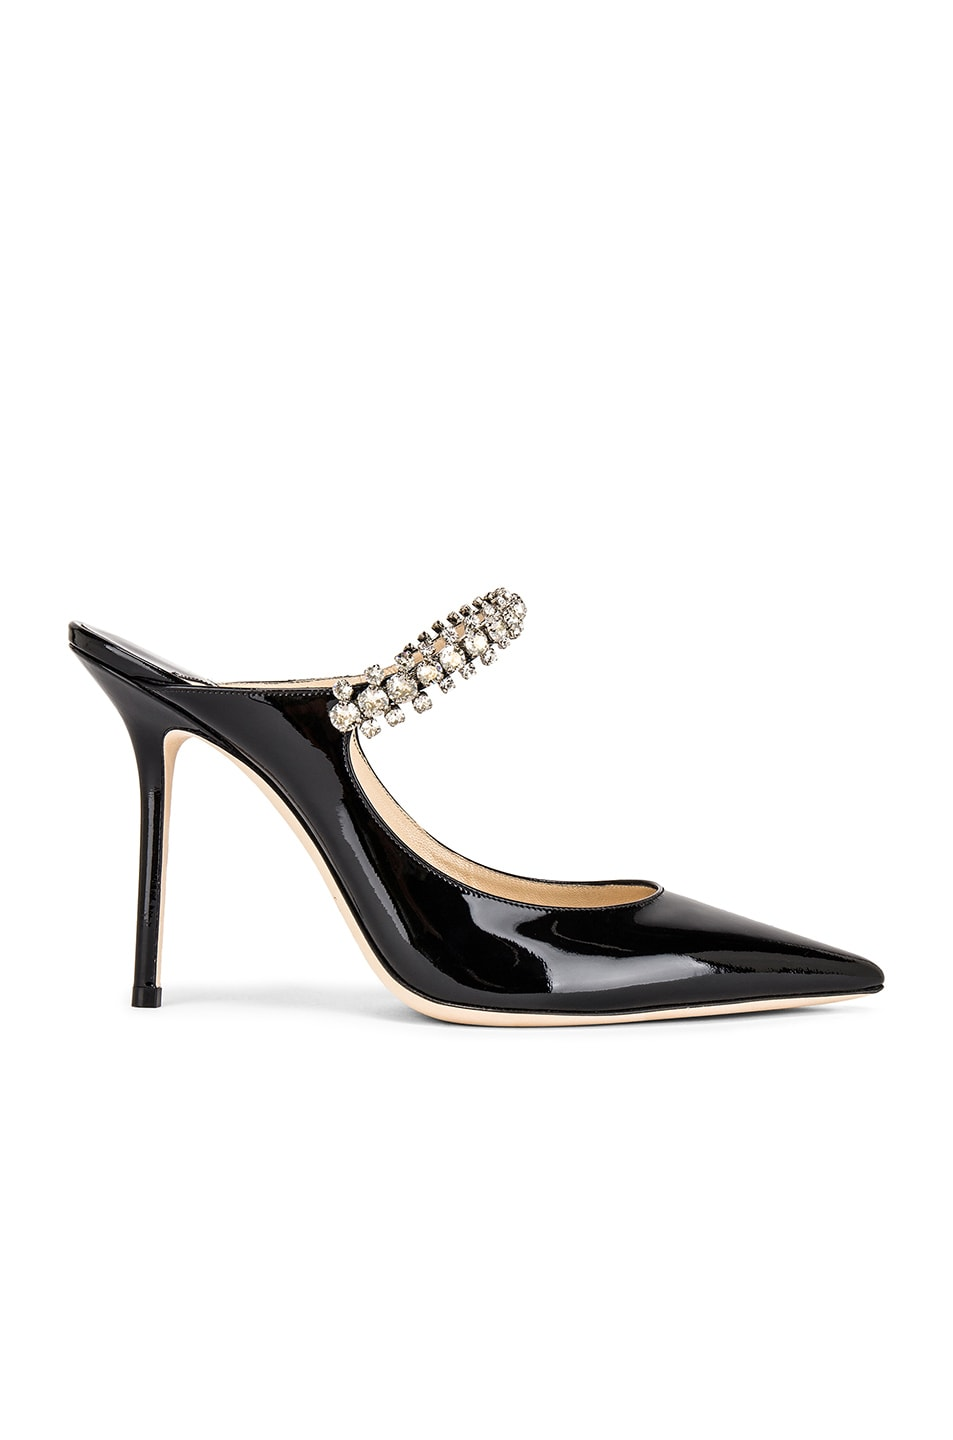 Image 1 of Jimmy Choo Bing 100 Patent Leather Mule in Black